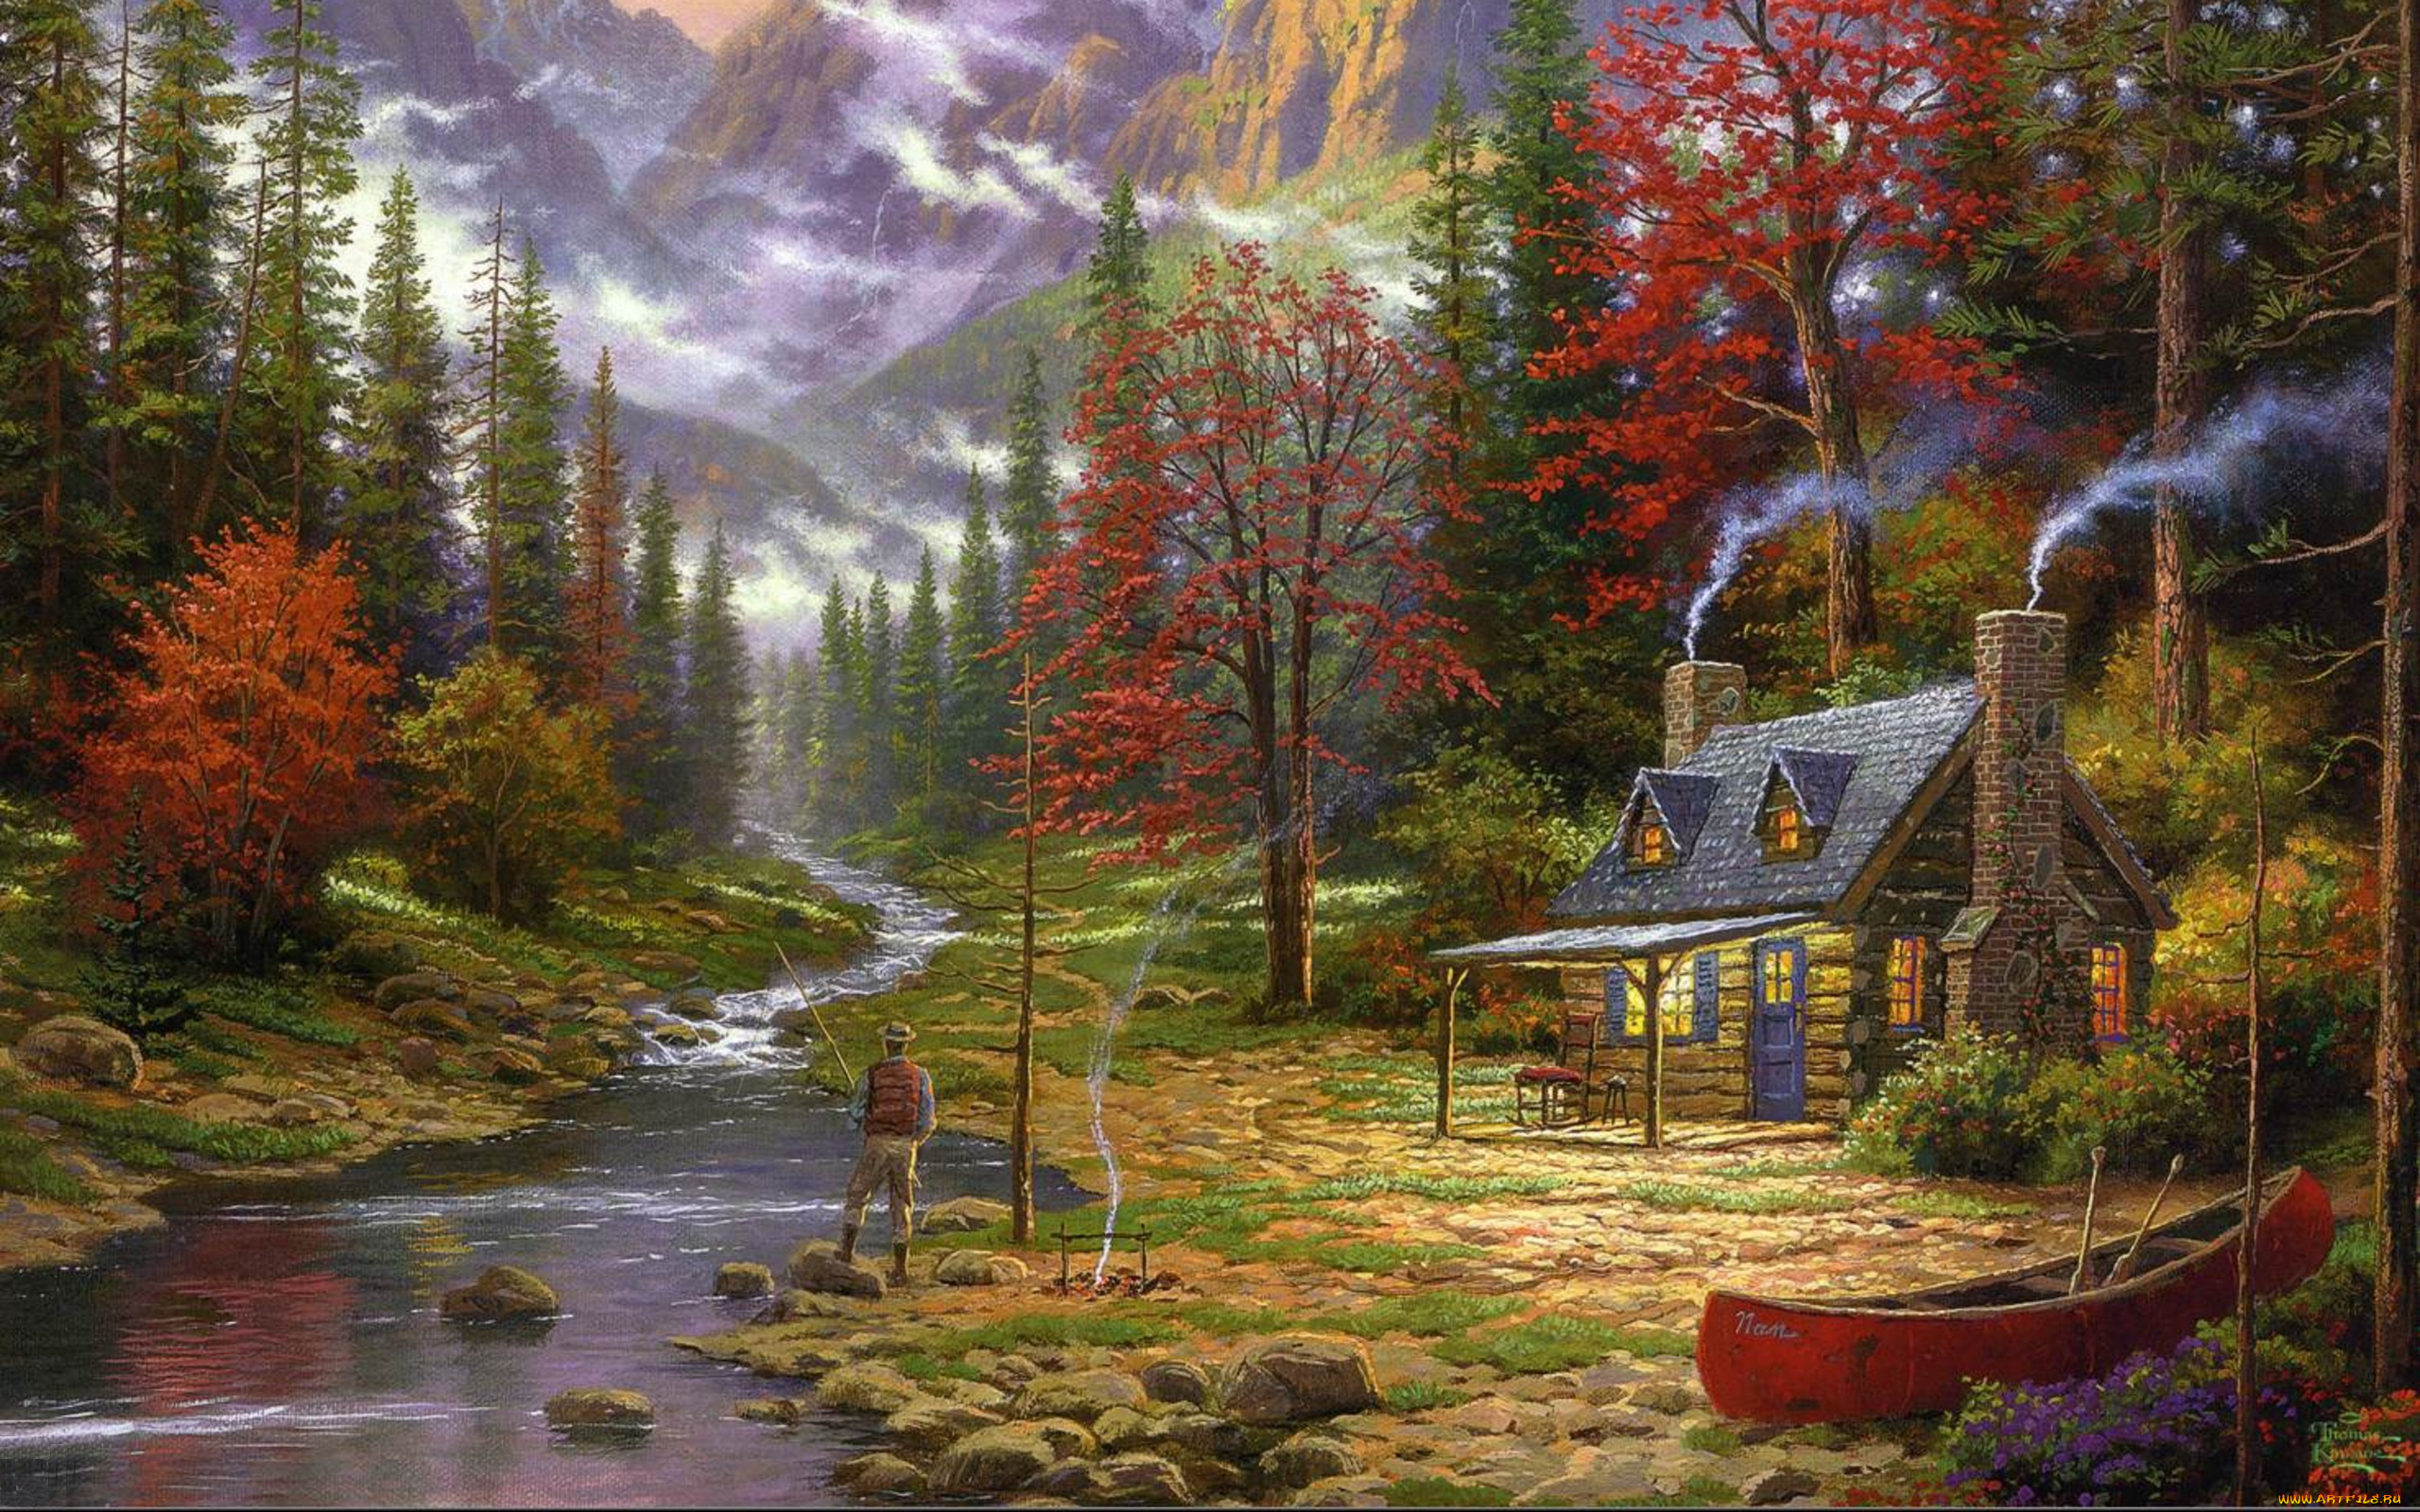 Thomas Kinkade art for sale Peaceful Retreat Beginning of a Perfect Evening II by Thomas Kinkade LARGE 24x36 Signed and Numbered SN Limited Edition Framed Canvas